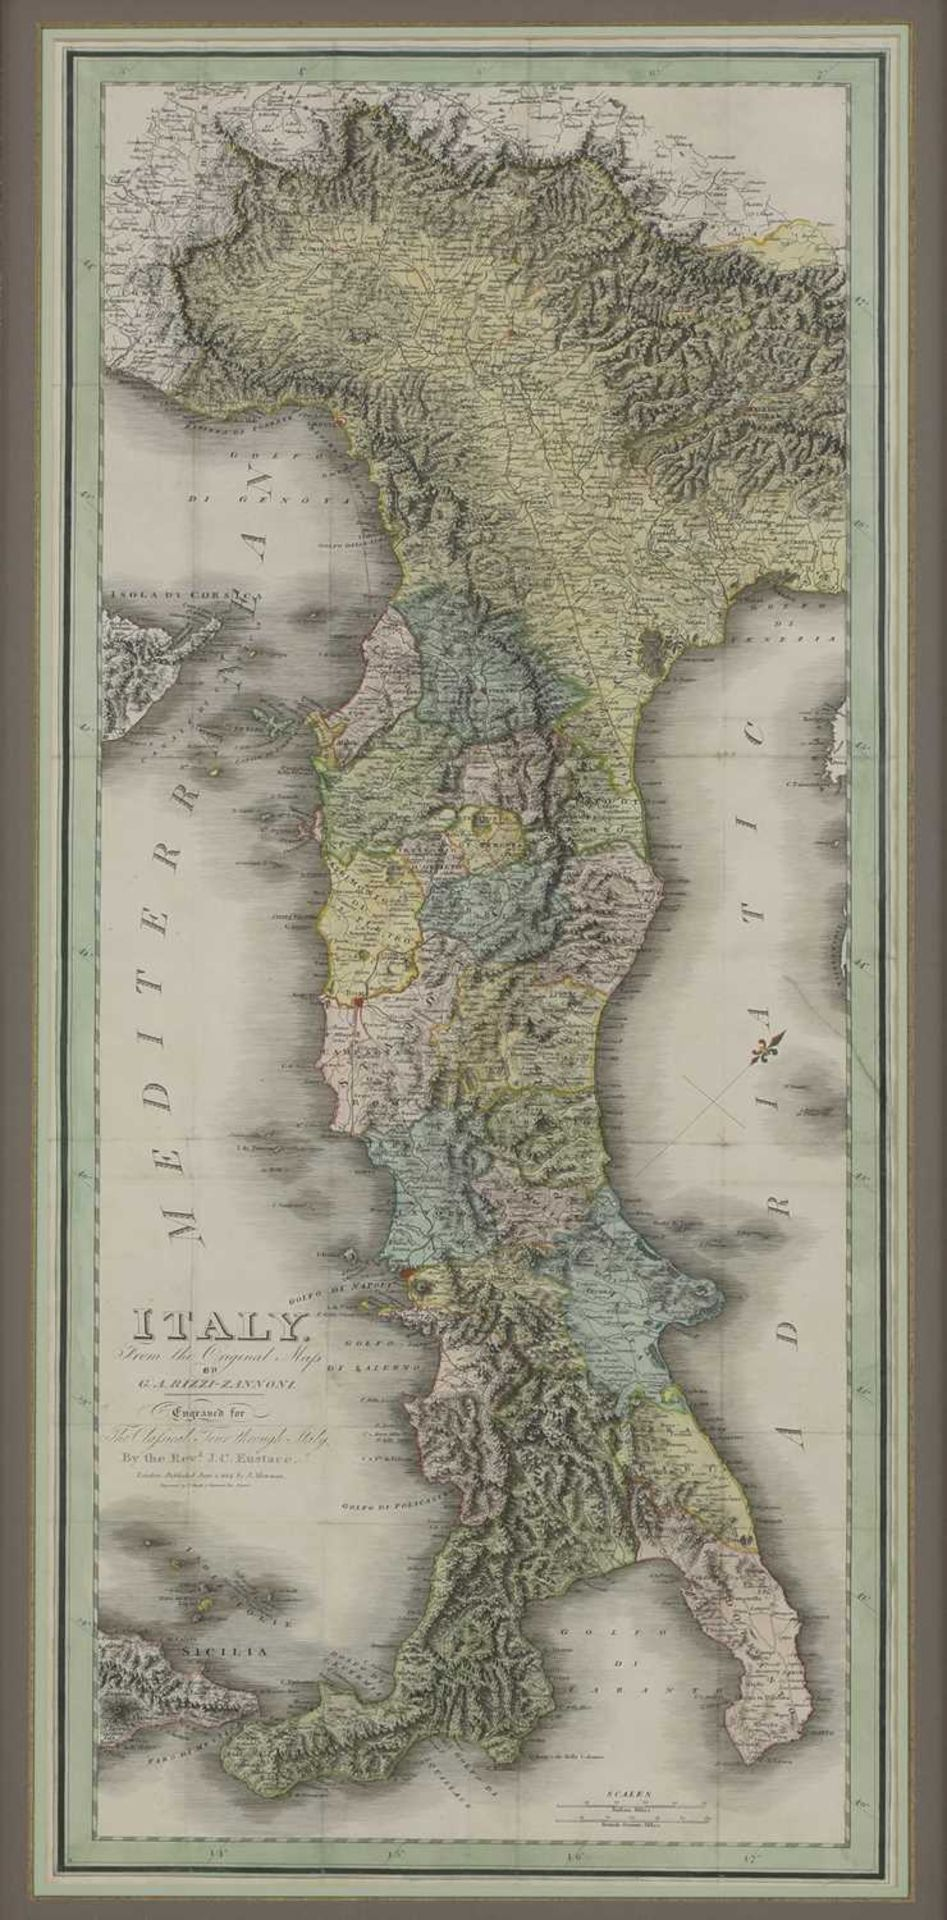 'Italy From The Original Map by G.A. Rizzi-Zannoni,